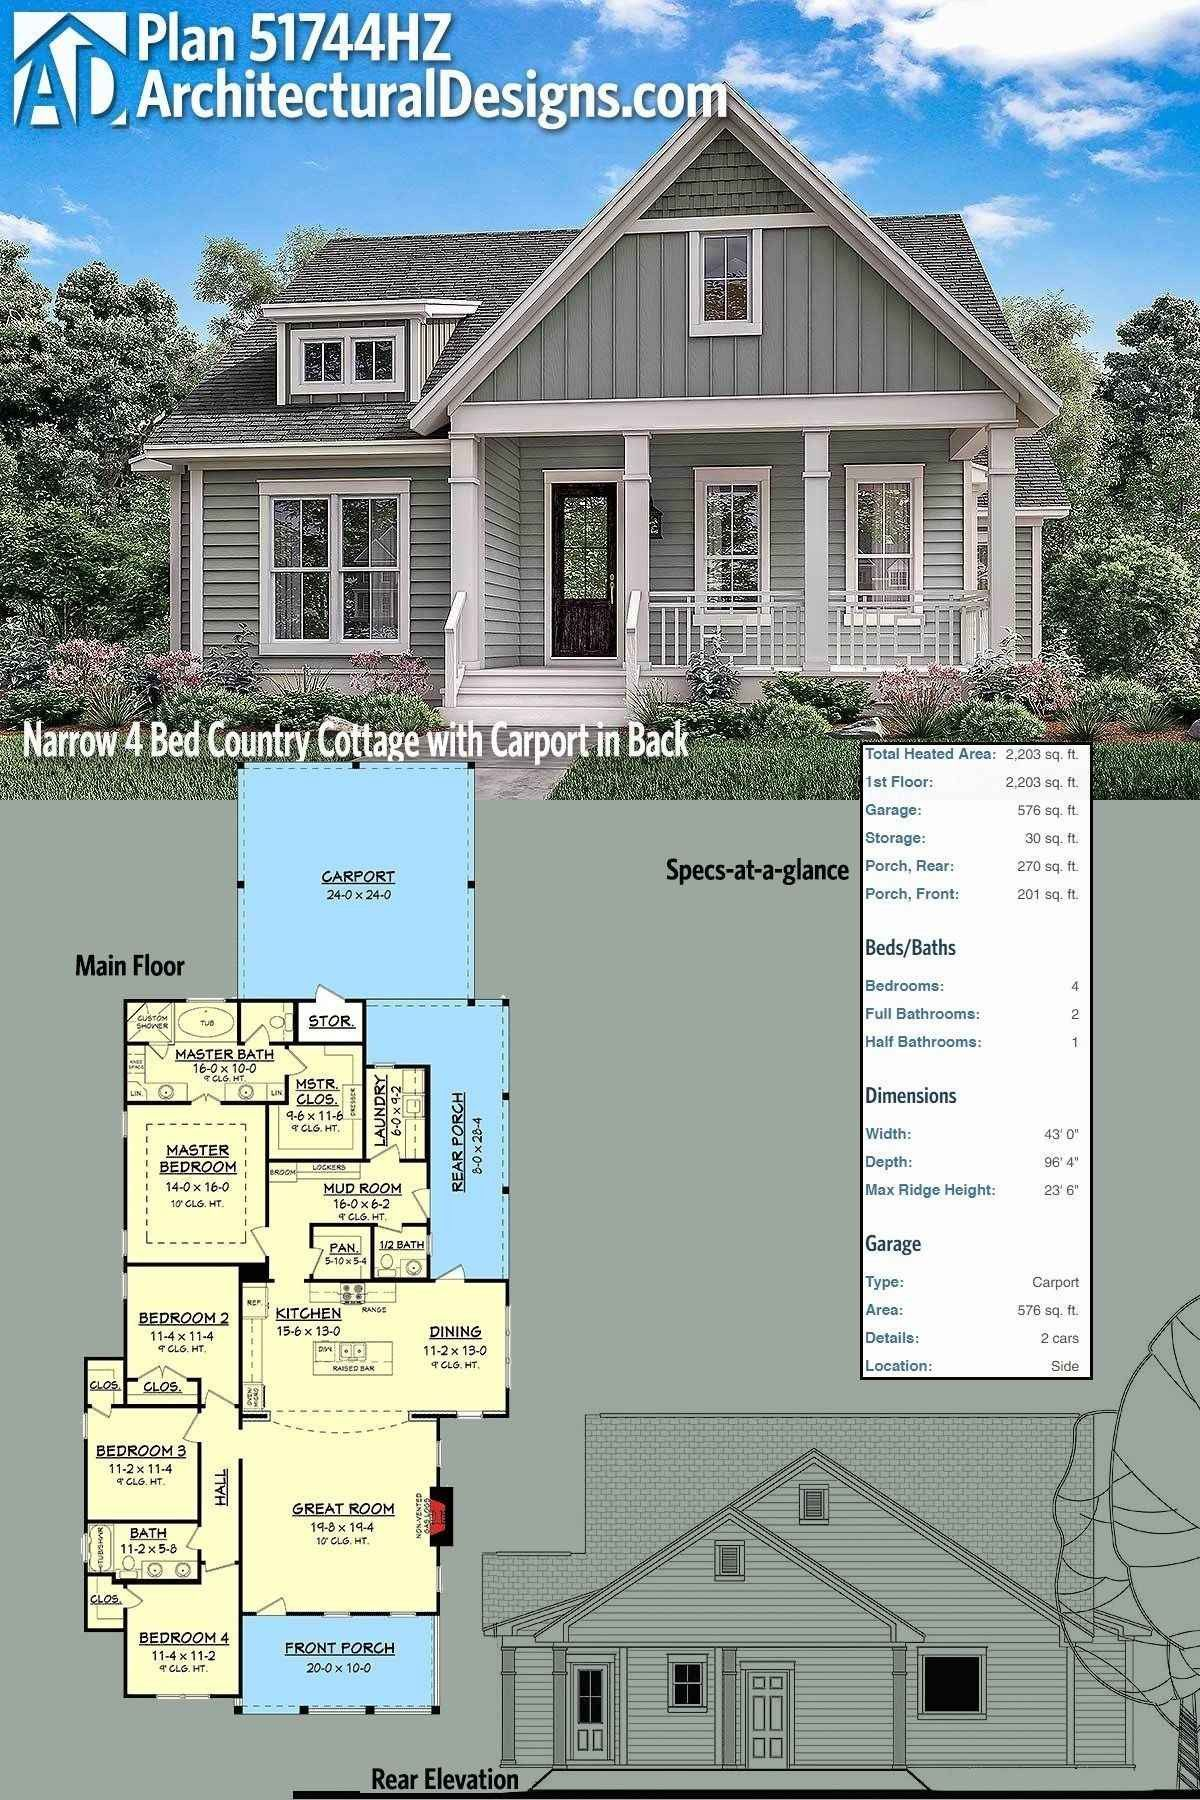 Awesome Caribbean Style House Plans Check More At Https Downtown Raleigh Com Caribbean Style House Plans Craftsman House Plans Cottage Plan Craftsman House